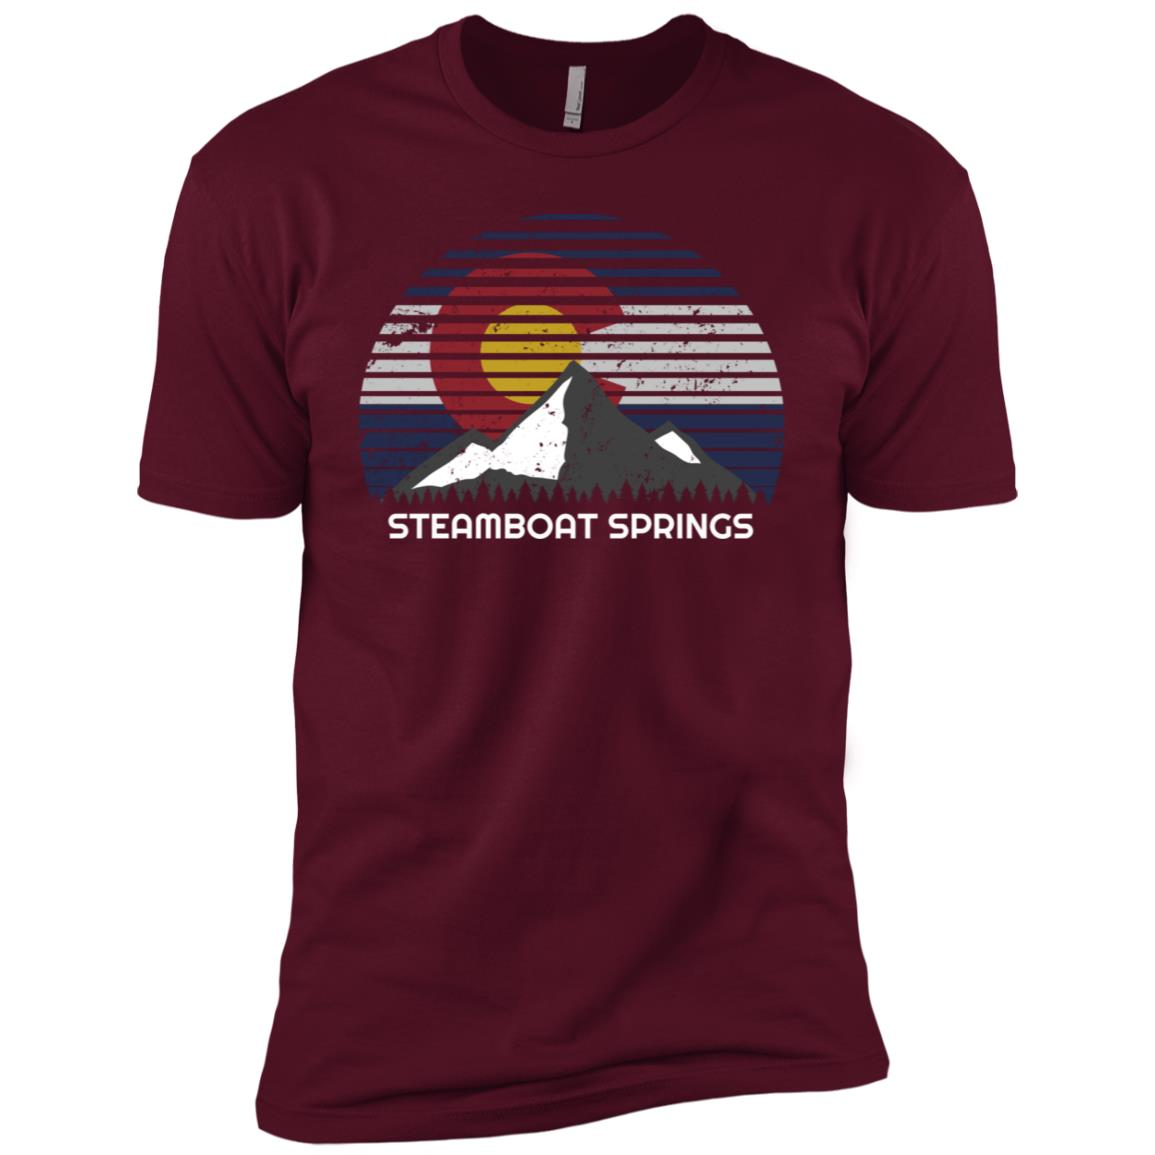 Steamboat Springs, Colorado x Co Flag Mtn Top Men Short Sleeve T-Shirt